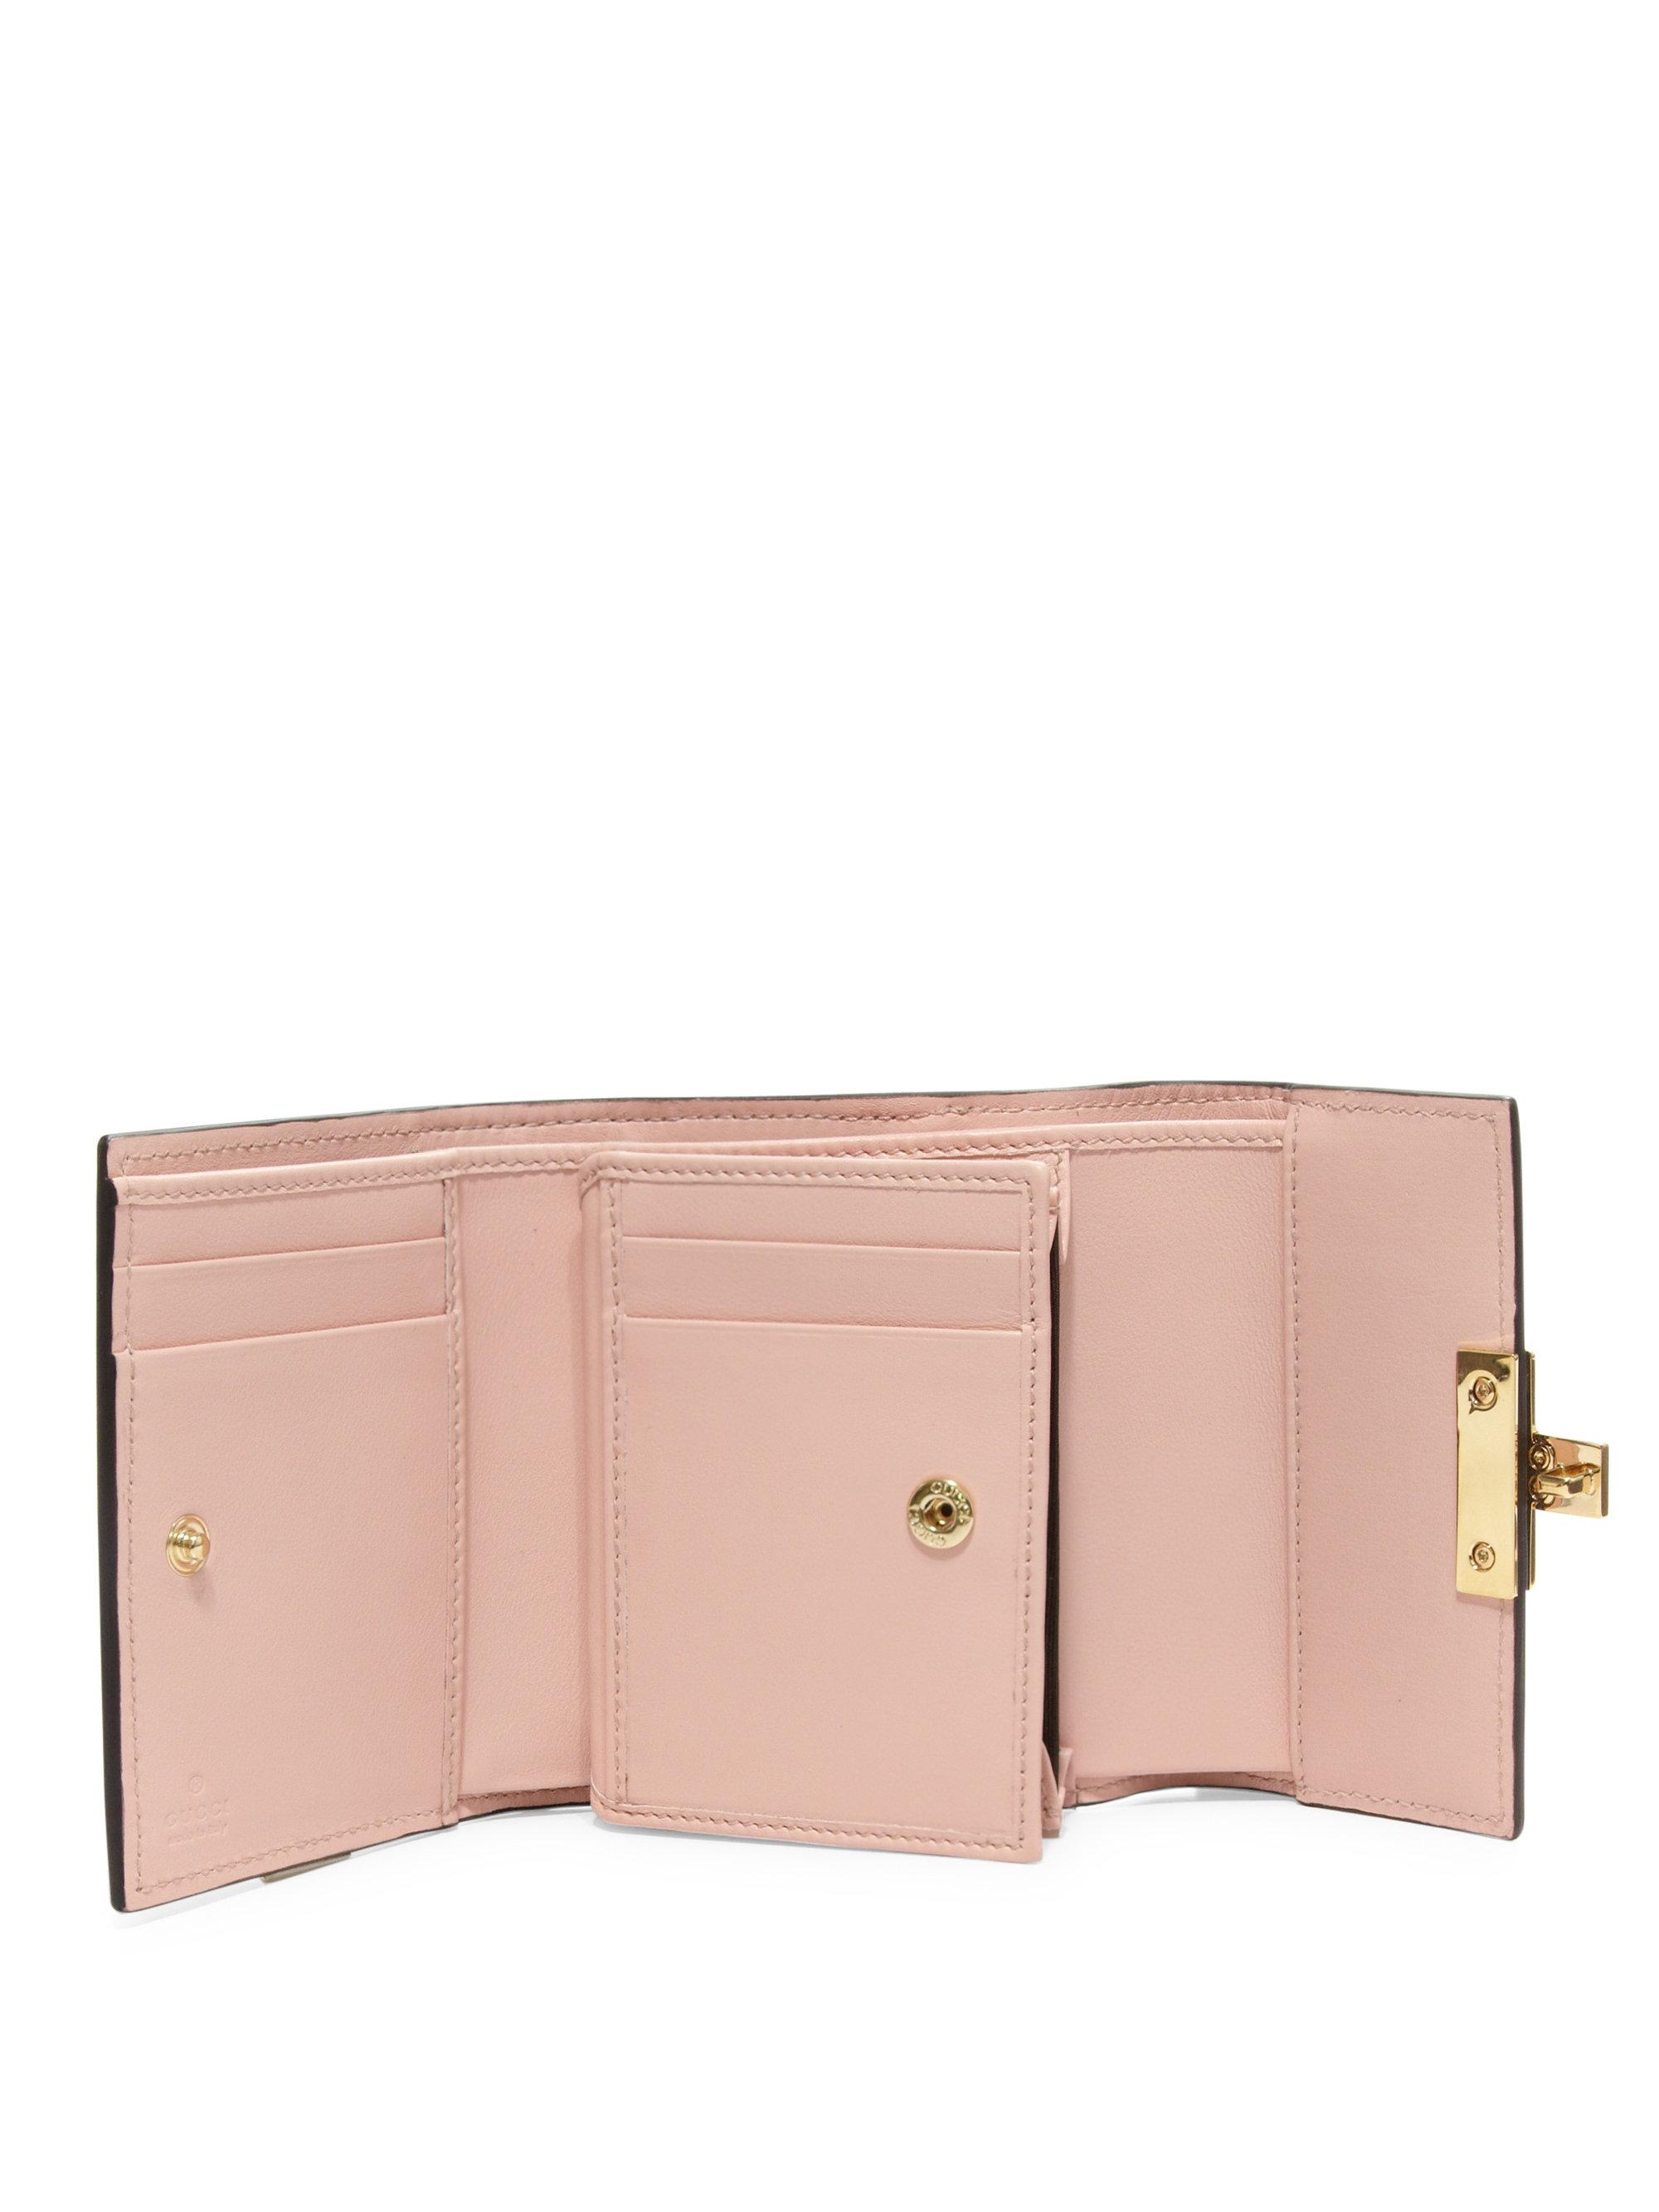 855851150f9 Lyst - Gucci Padlock Gg Supreme Leather French Flap Wallet in Pink